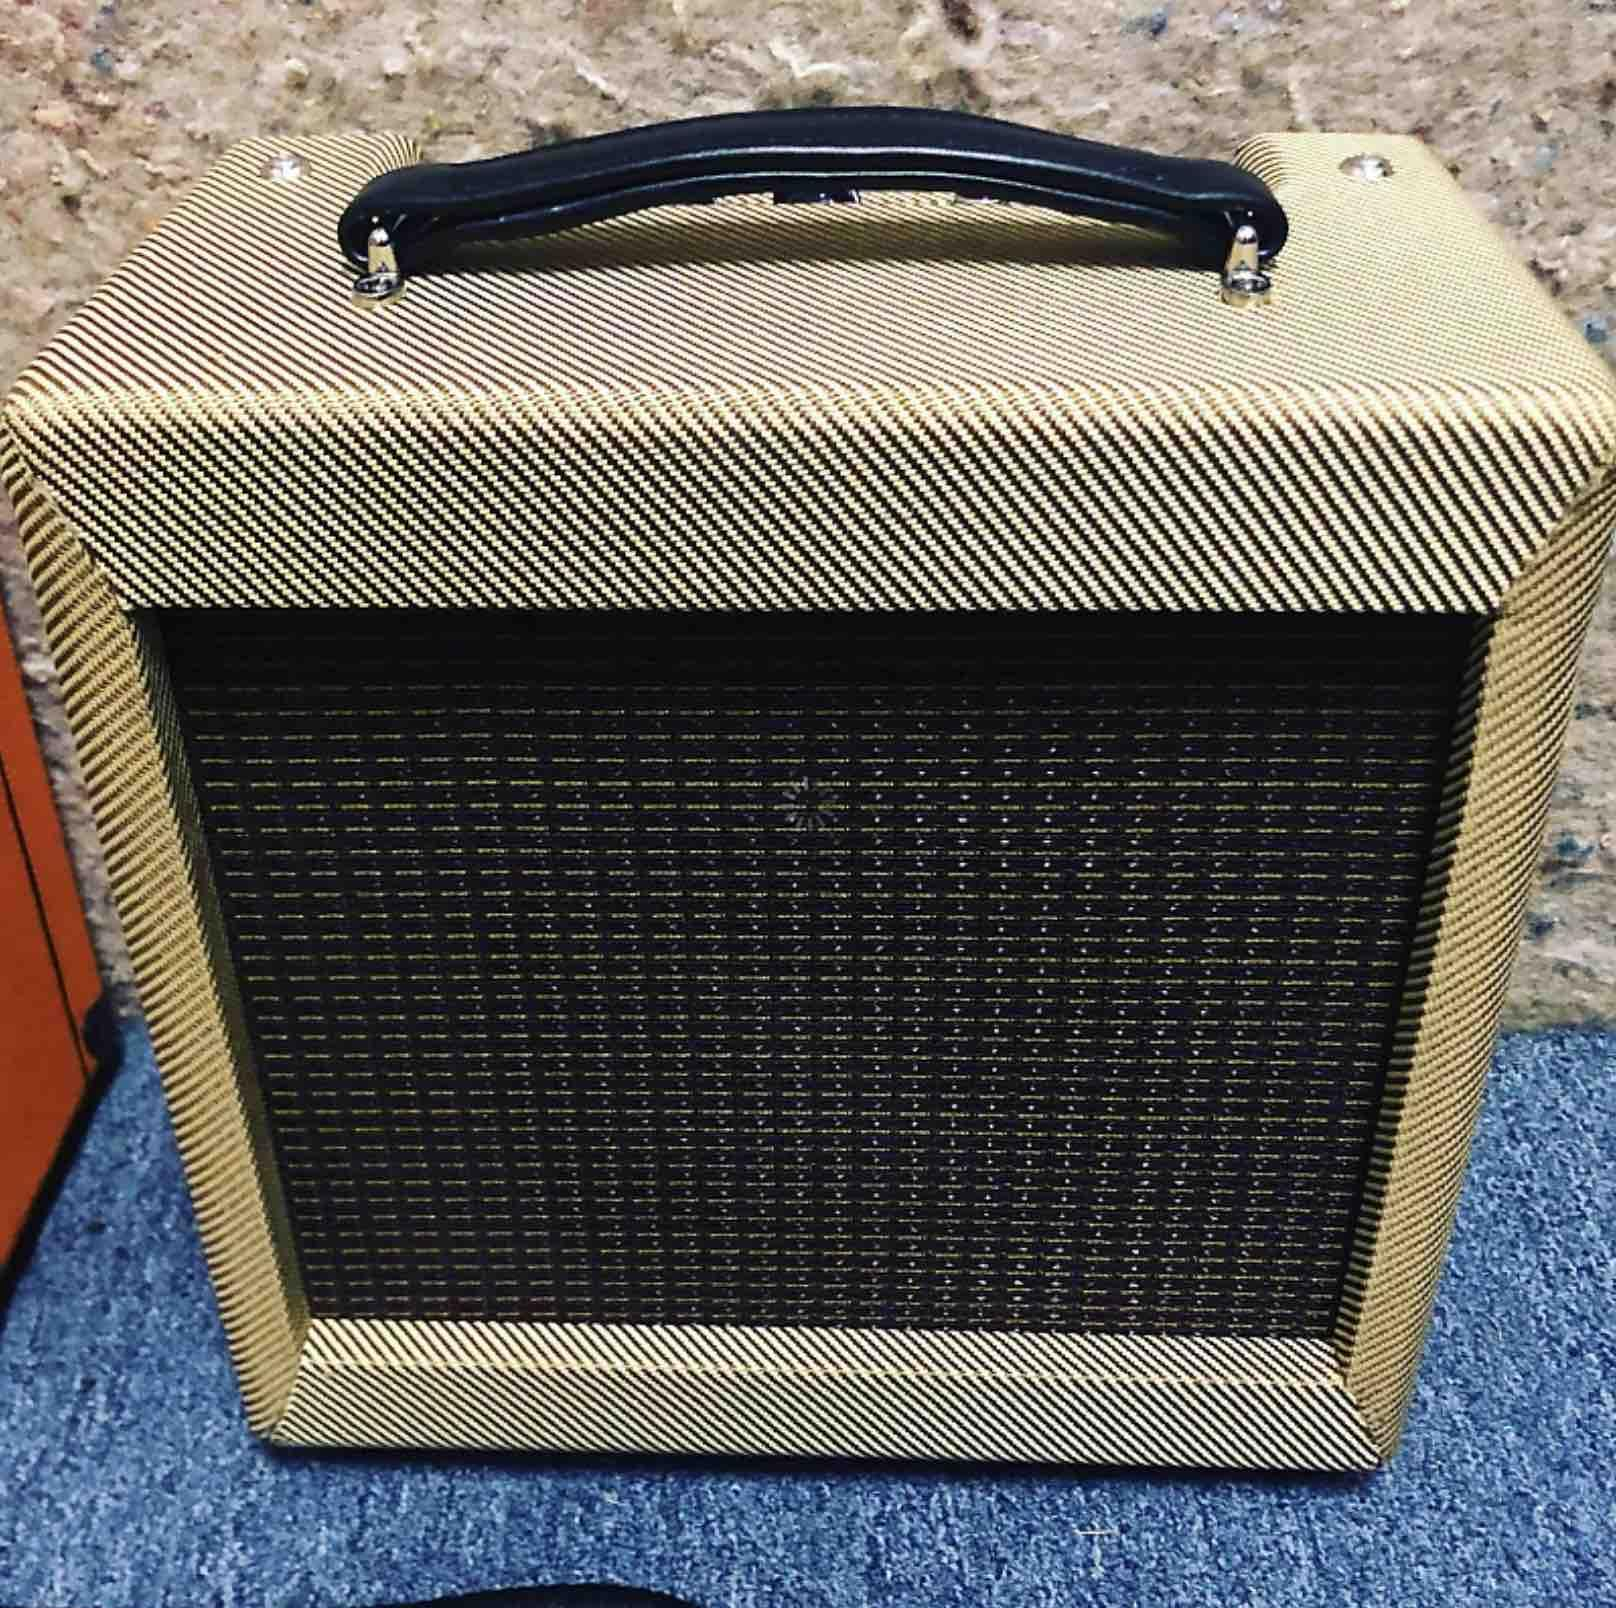 "5F2A 1*10"" speaker Hand Wired Tweed Guitar Amplifier Combo 5W 1*8 Speaker with Volume Tone Control customized logo Grand Amp free shipping"